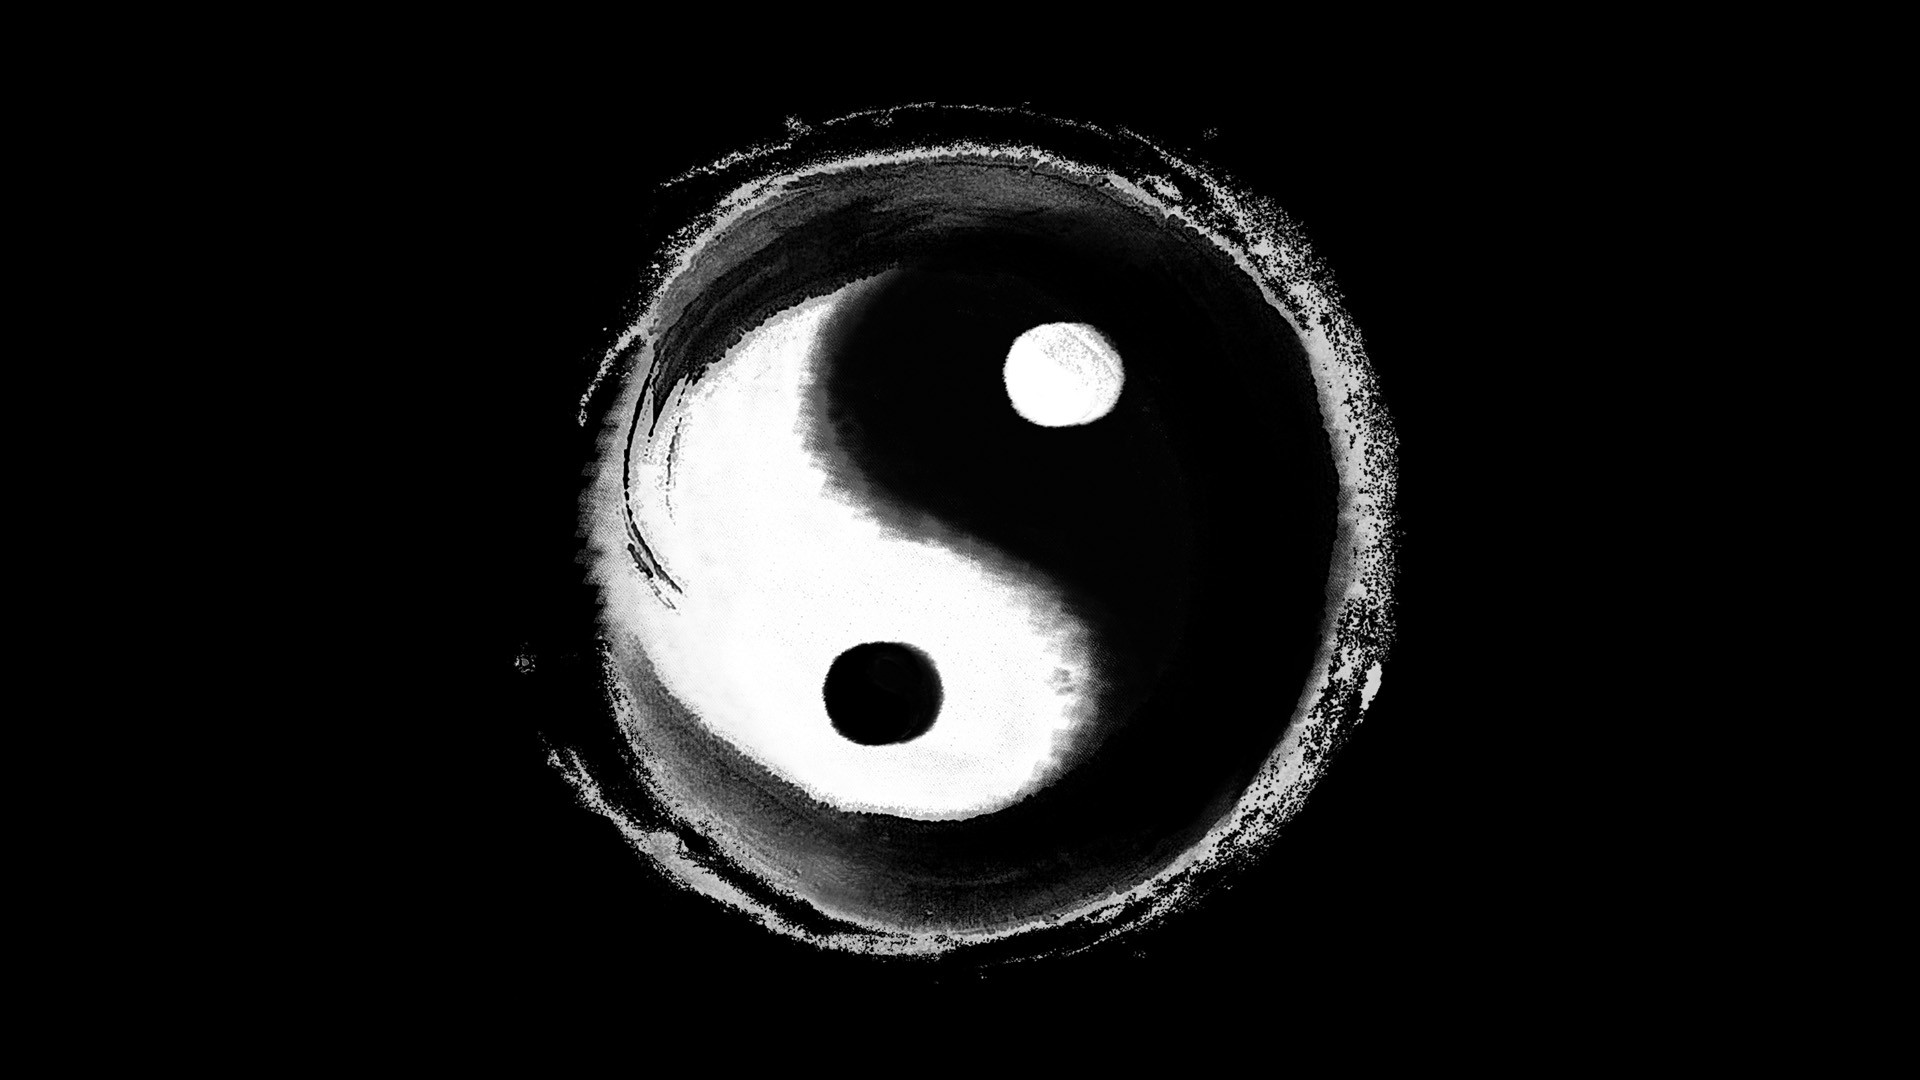 Yin Yang Wallpapers - WallpaperSafari